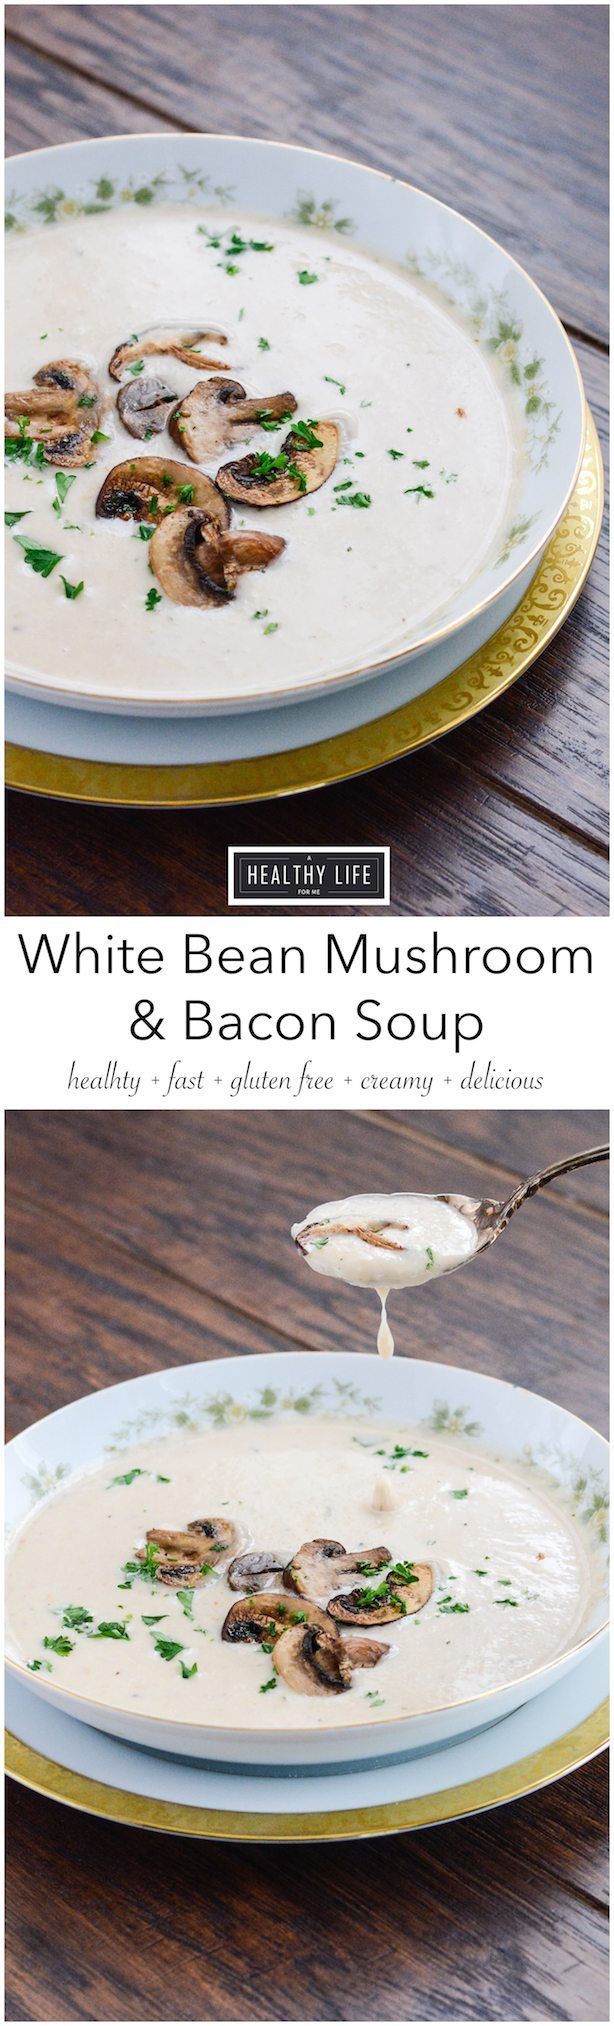 White Bean Mushroom Bacon Soup is creamy, spicy, rustic soup that is healthy, gluten free and loaded with fiber and protein | ahealthylifeforme.com